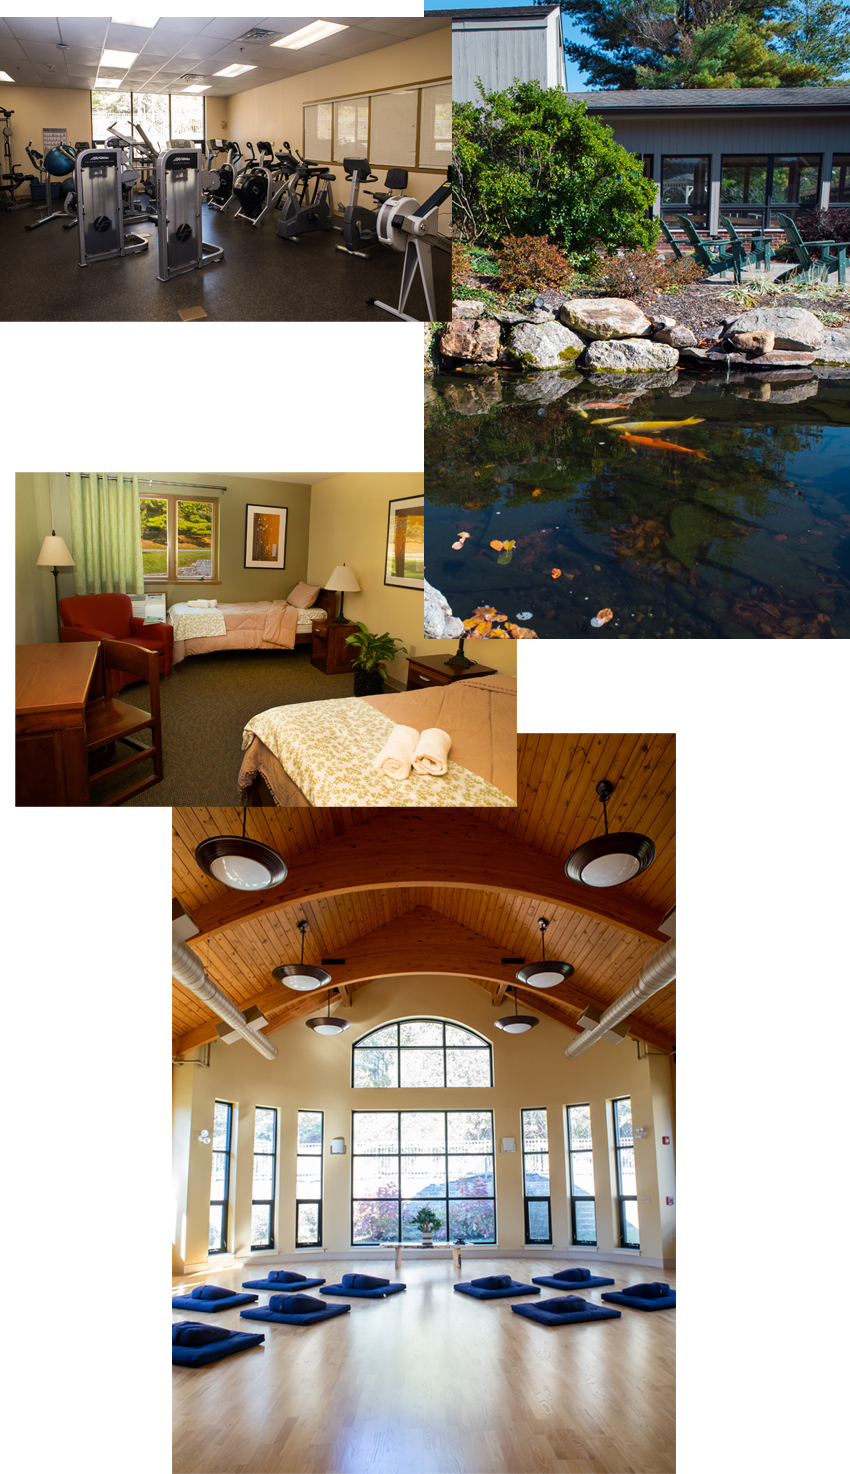 Collage of images taken around Mirmont Treatment Center (workout room, Koi pond, bedroom, meditation room)